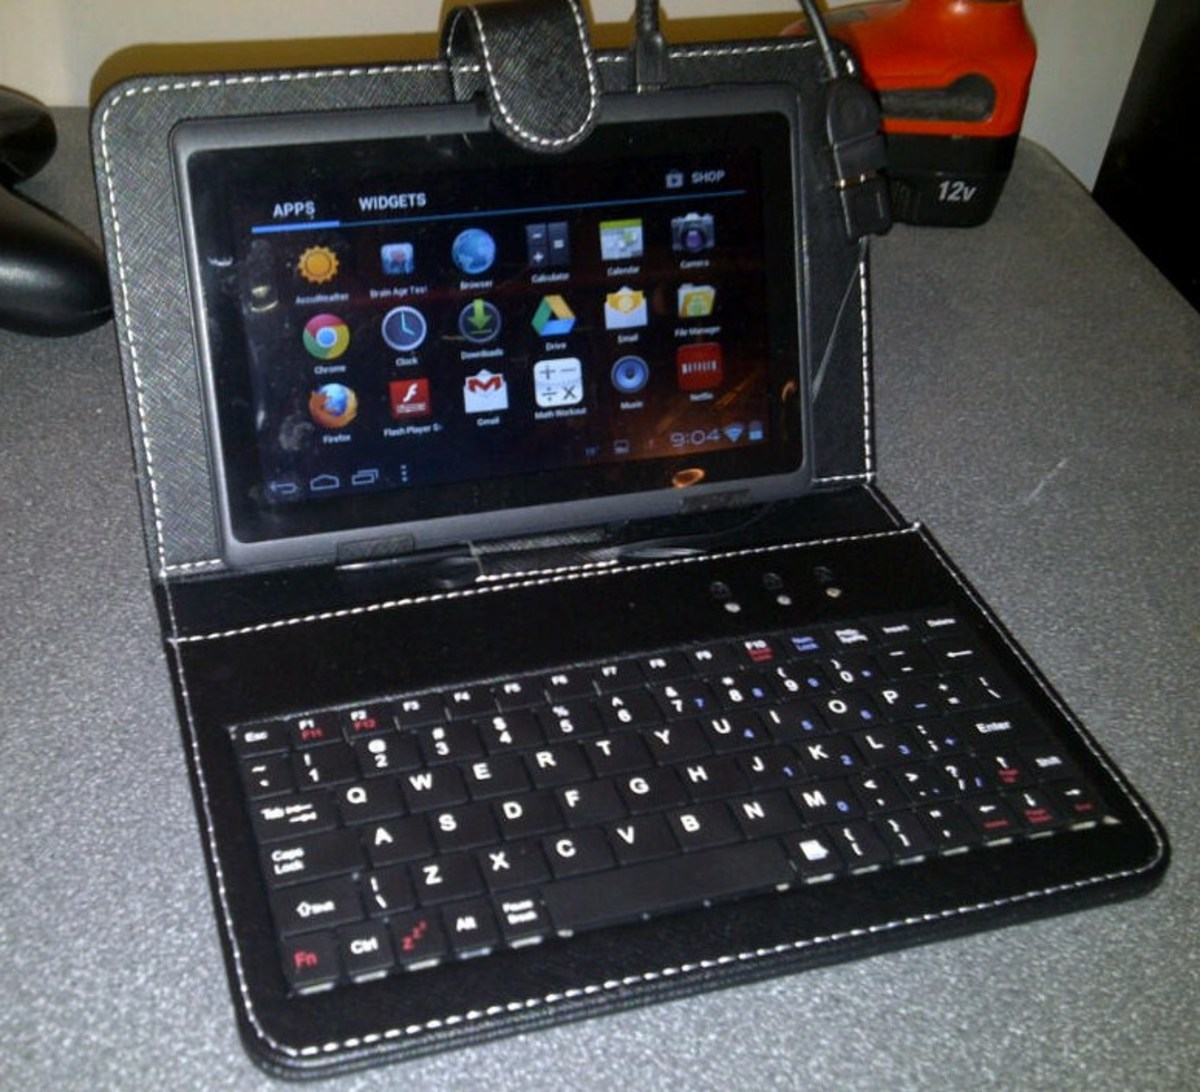 Android Tablet with USB keyboard for under $100: the USB keyboard/cover costs $12.97